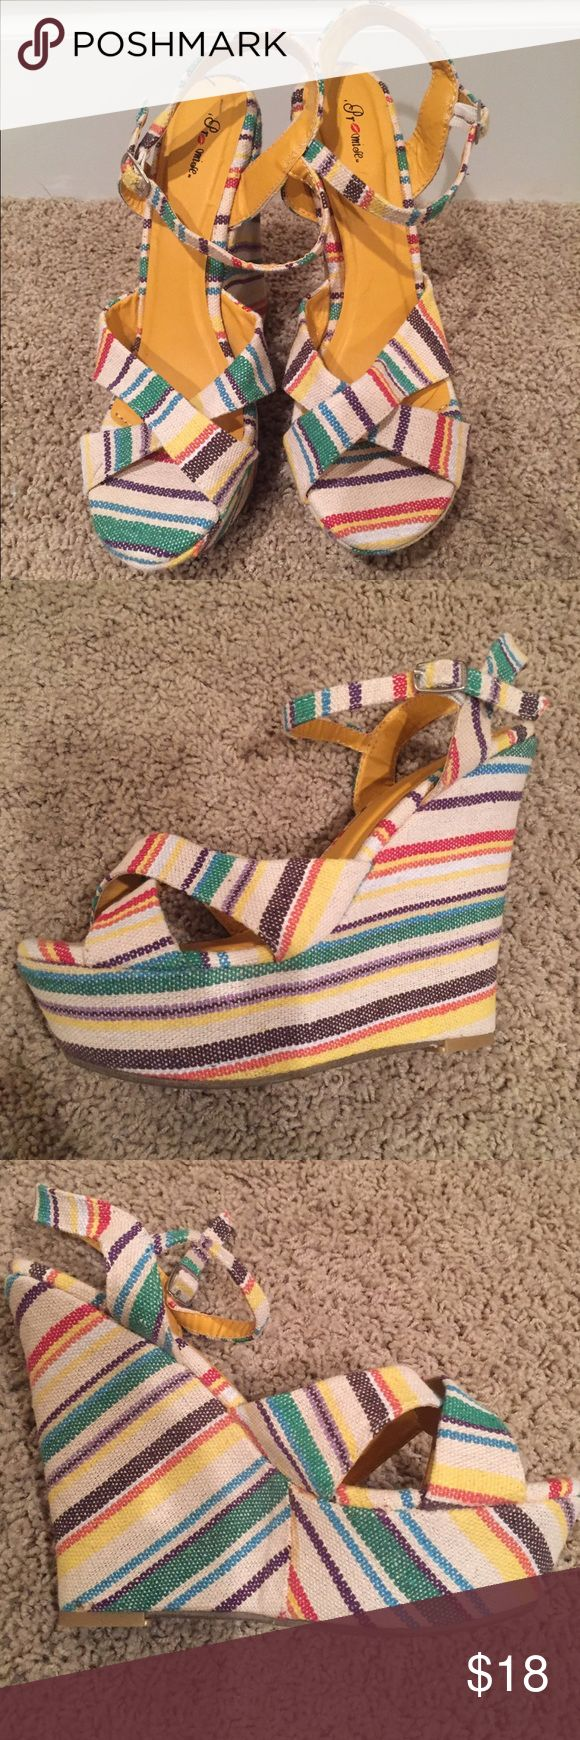 NWOT Striped Wedges Size 8 These are a pair of Promise brand wedge heels in a multi colored stripe pattern. Size 8. Excellent condition never worn! promise Shoes Heels